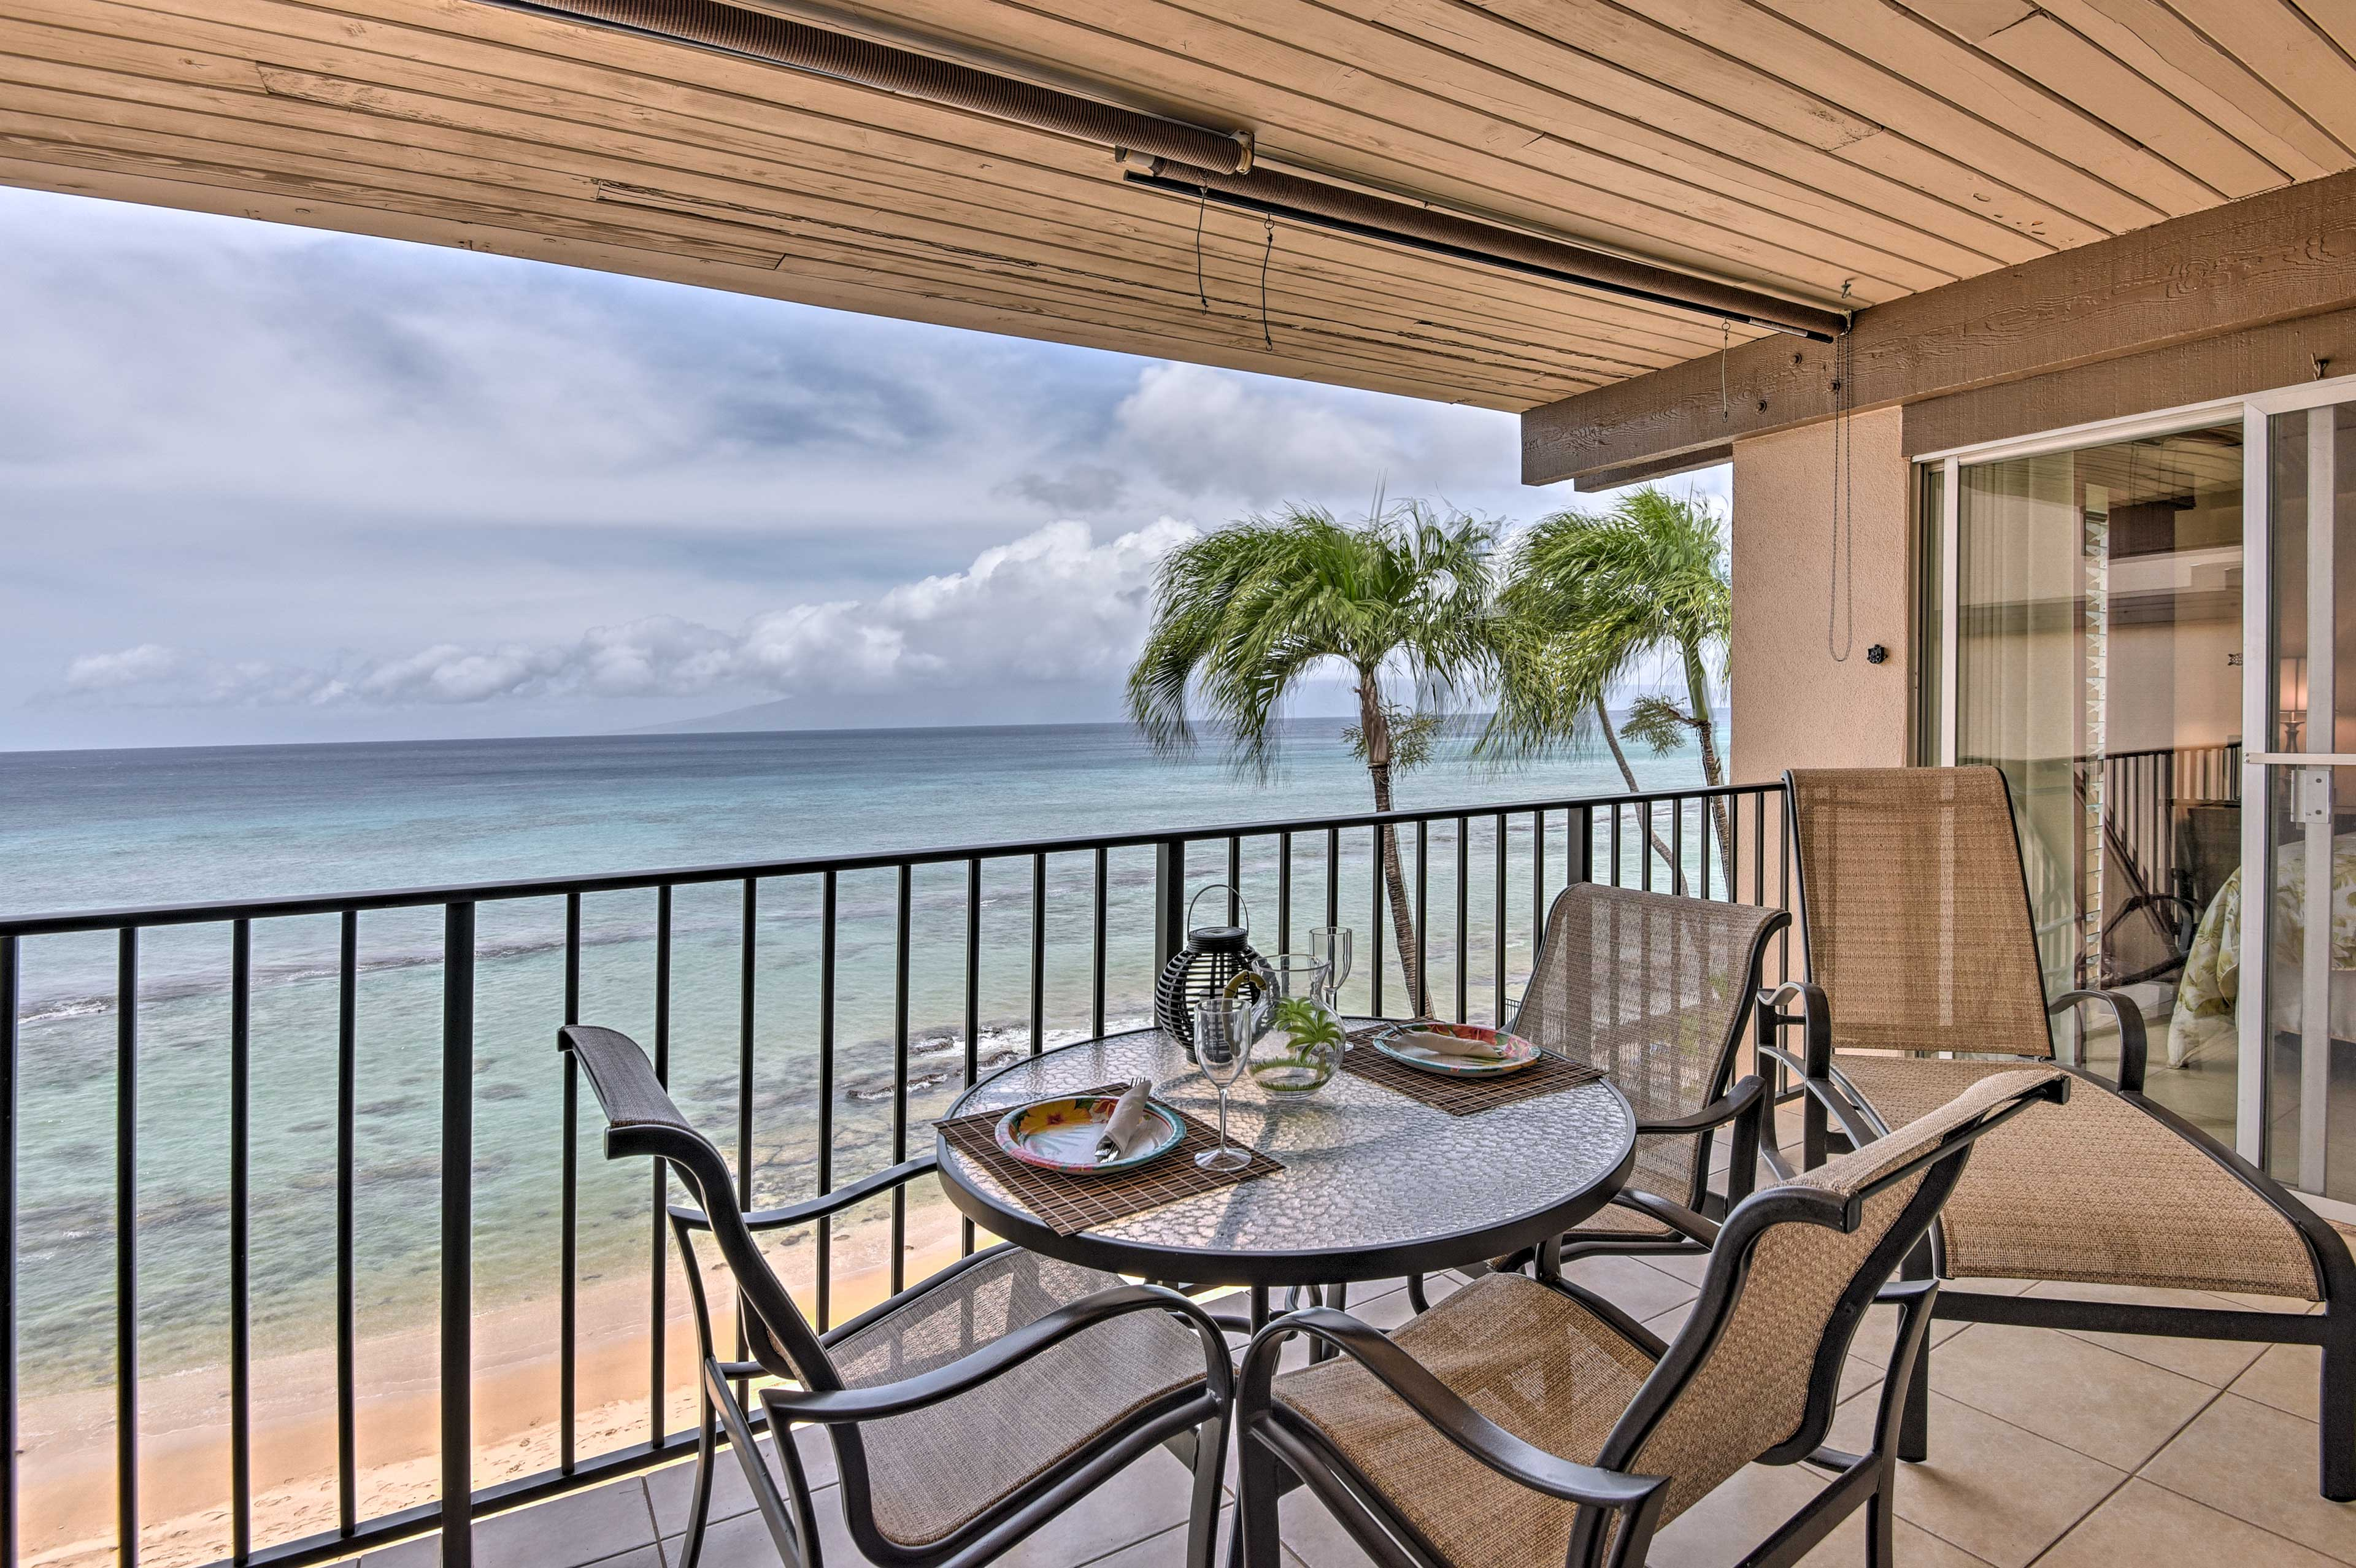 Look out over the ocean from the lanai of your Lahaina vacation rental home.